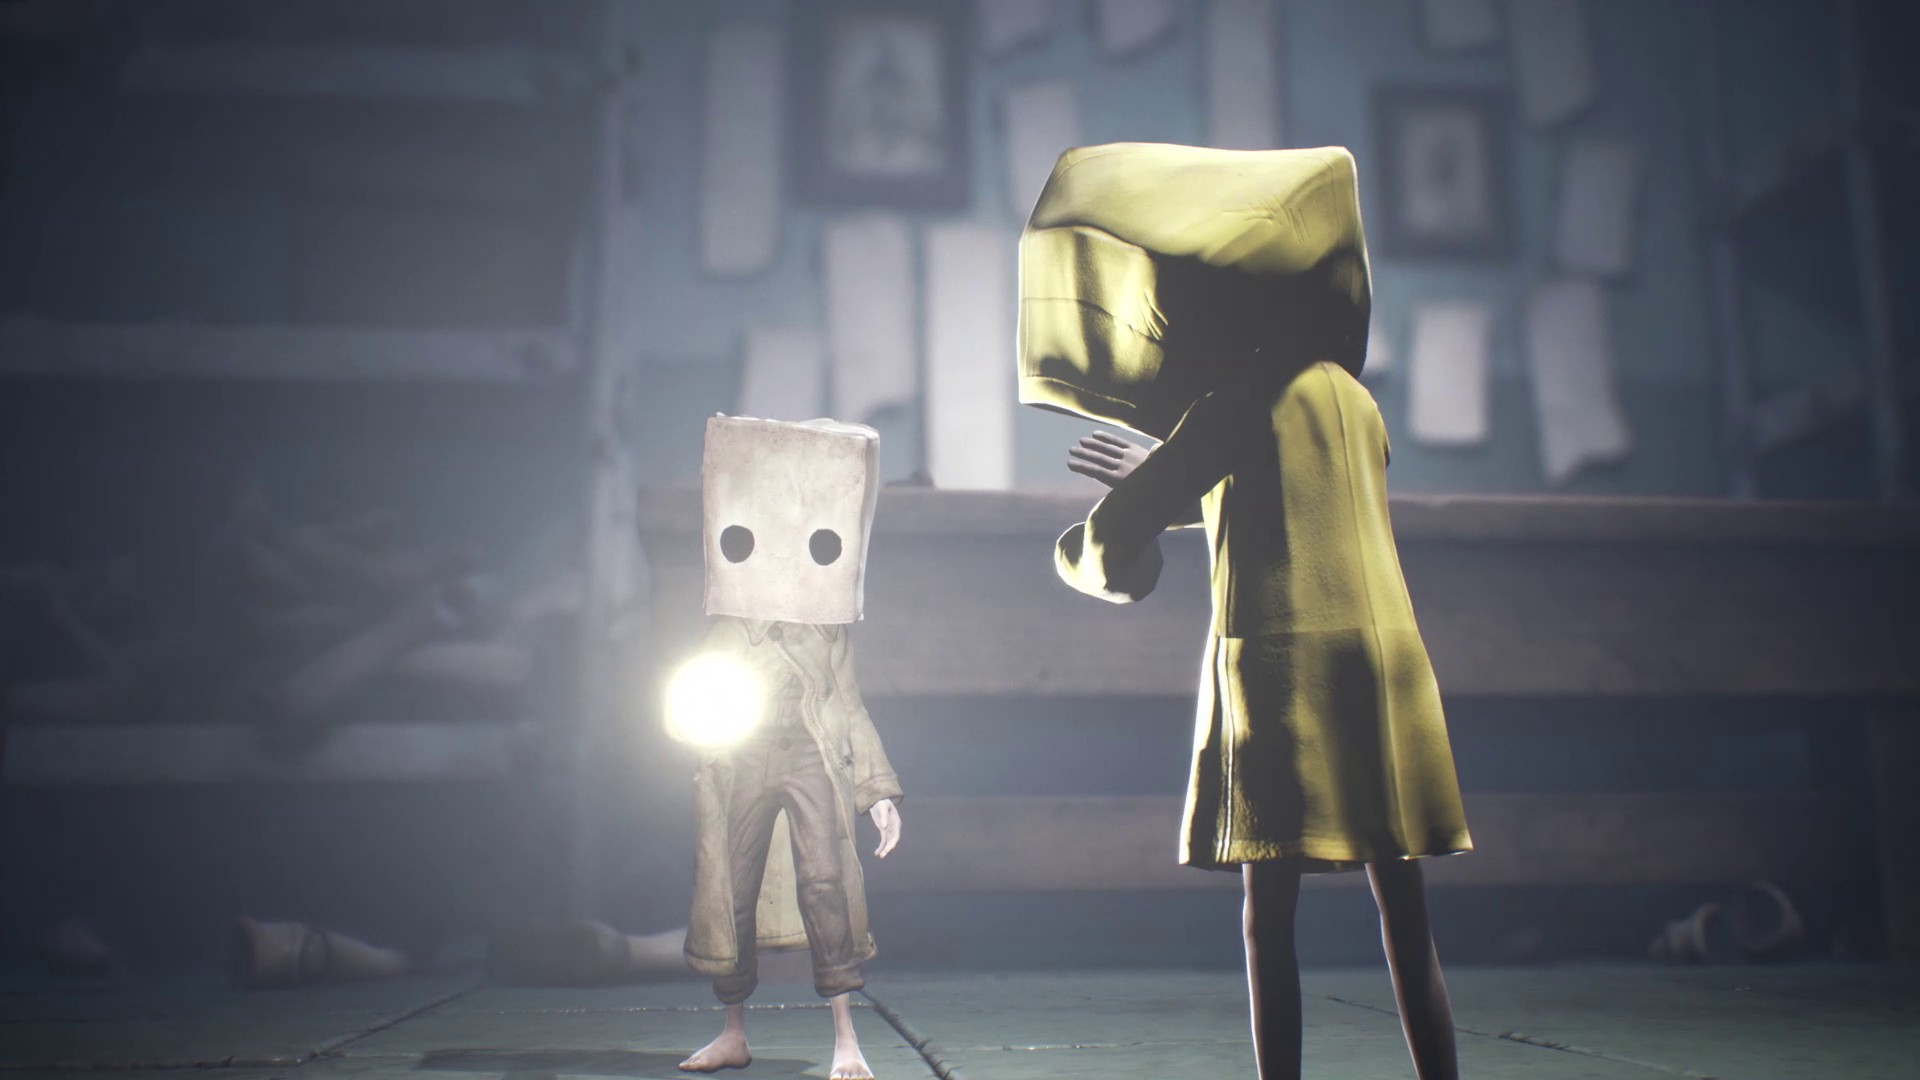 Video For Wake Up, Mono: It's Time to Play the Little Nightmares II Demo